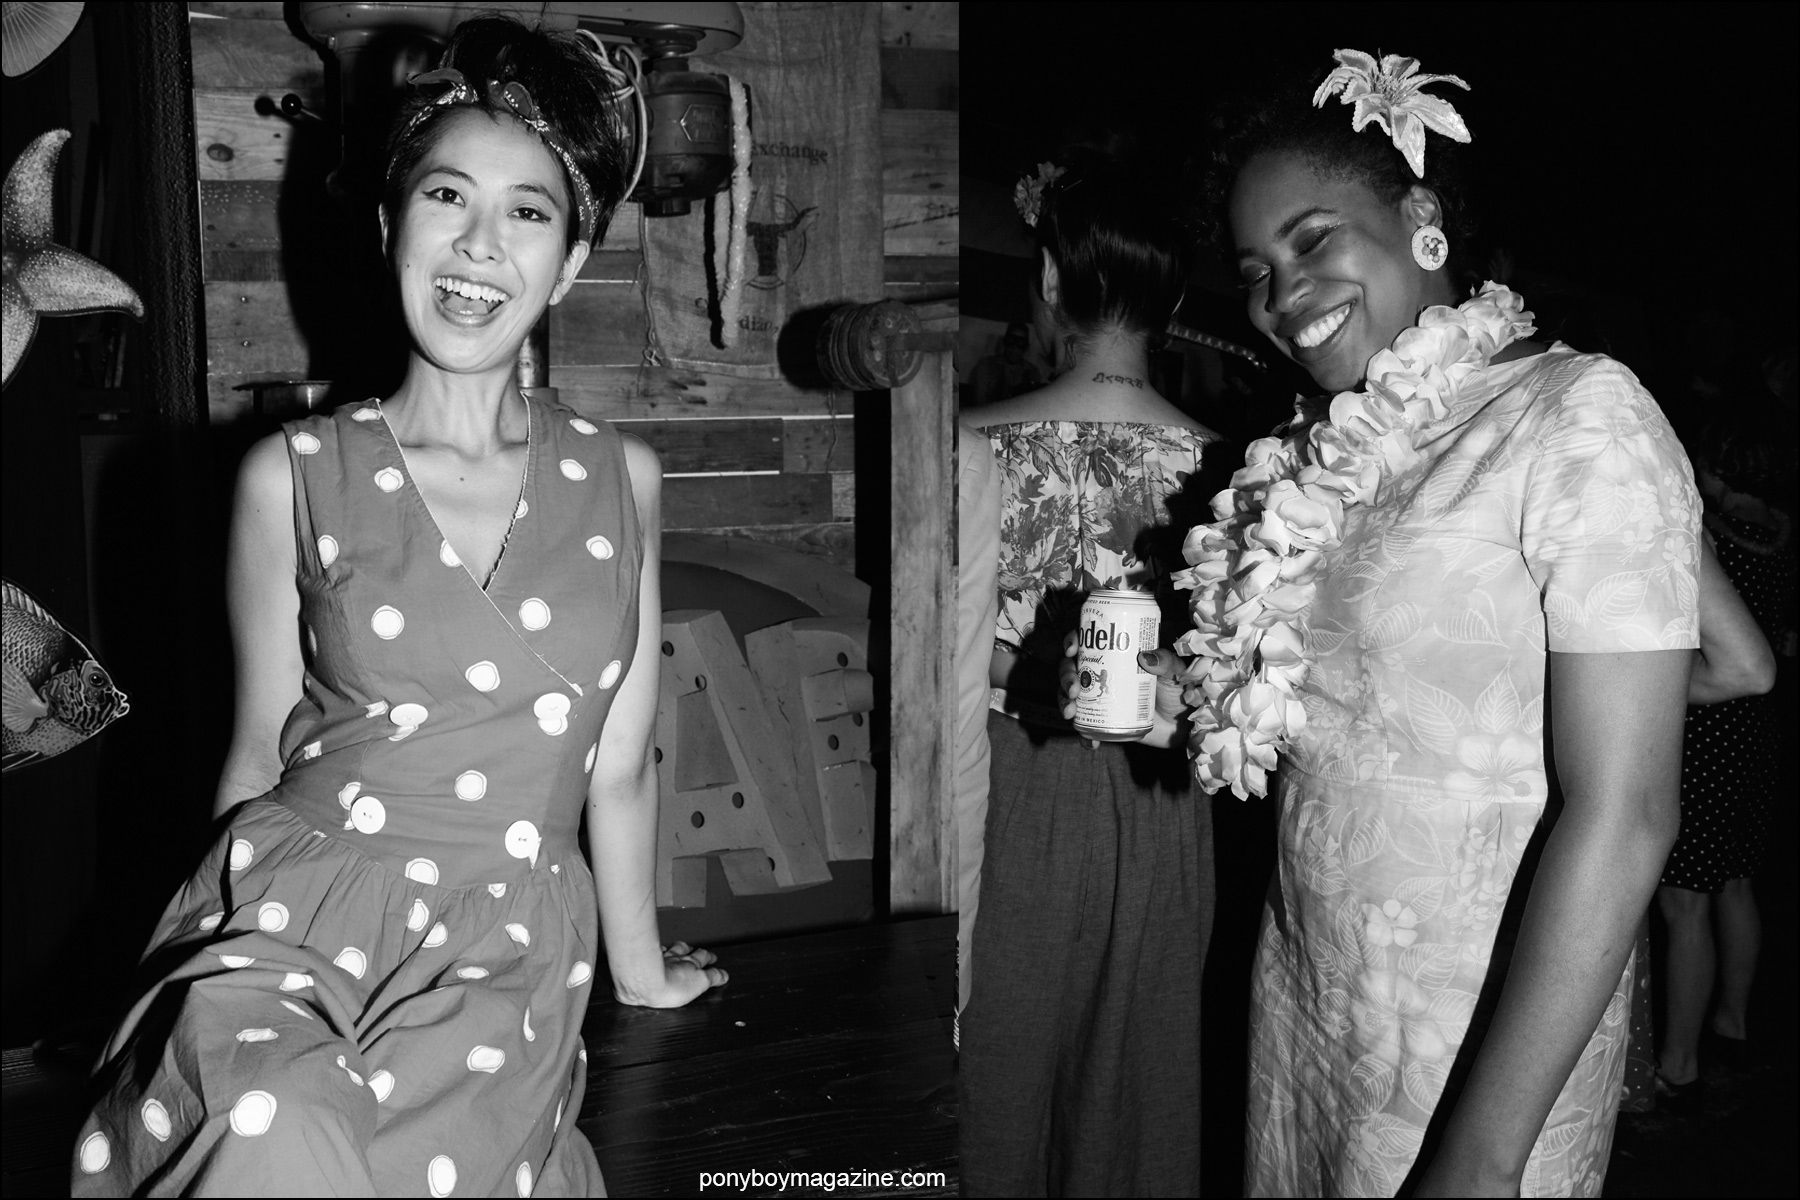 Rockabilly women in vintage dresses, snapped at Hula Rock Vol 2 in New York City. Photography by Alexander Thompson for Ponyboy magazine NY.